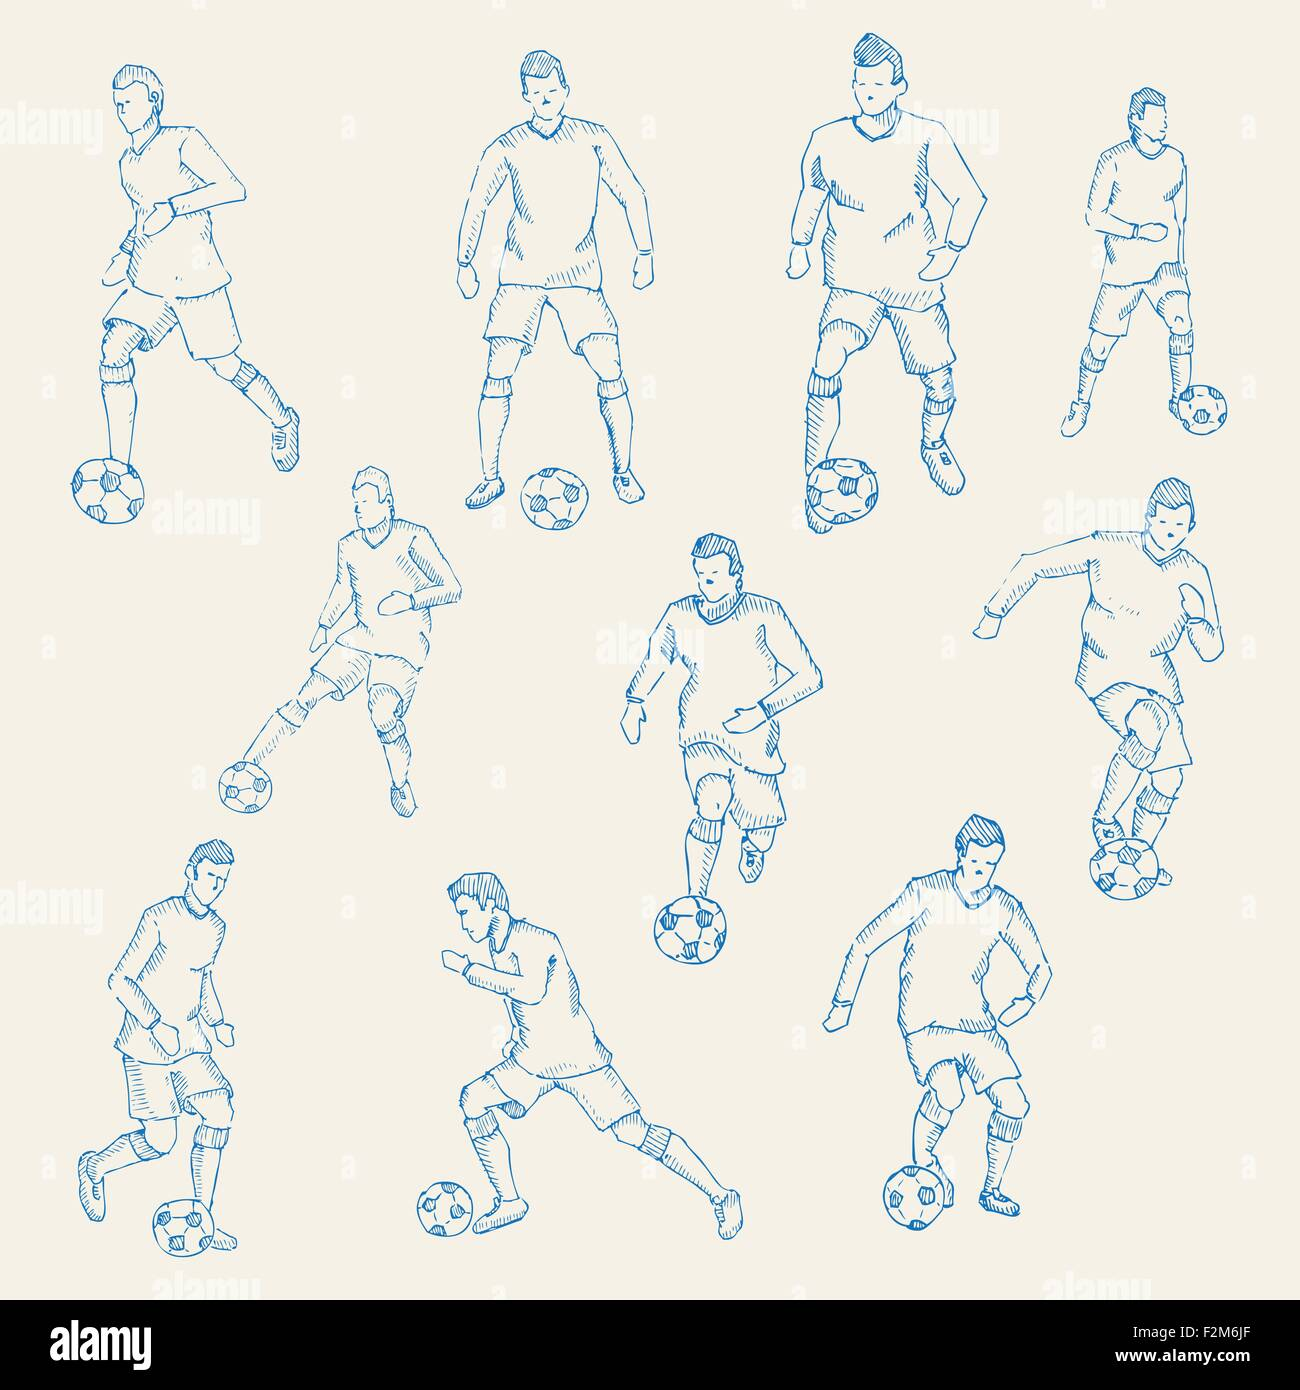 Hand drawn sketch football socer player action